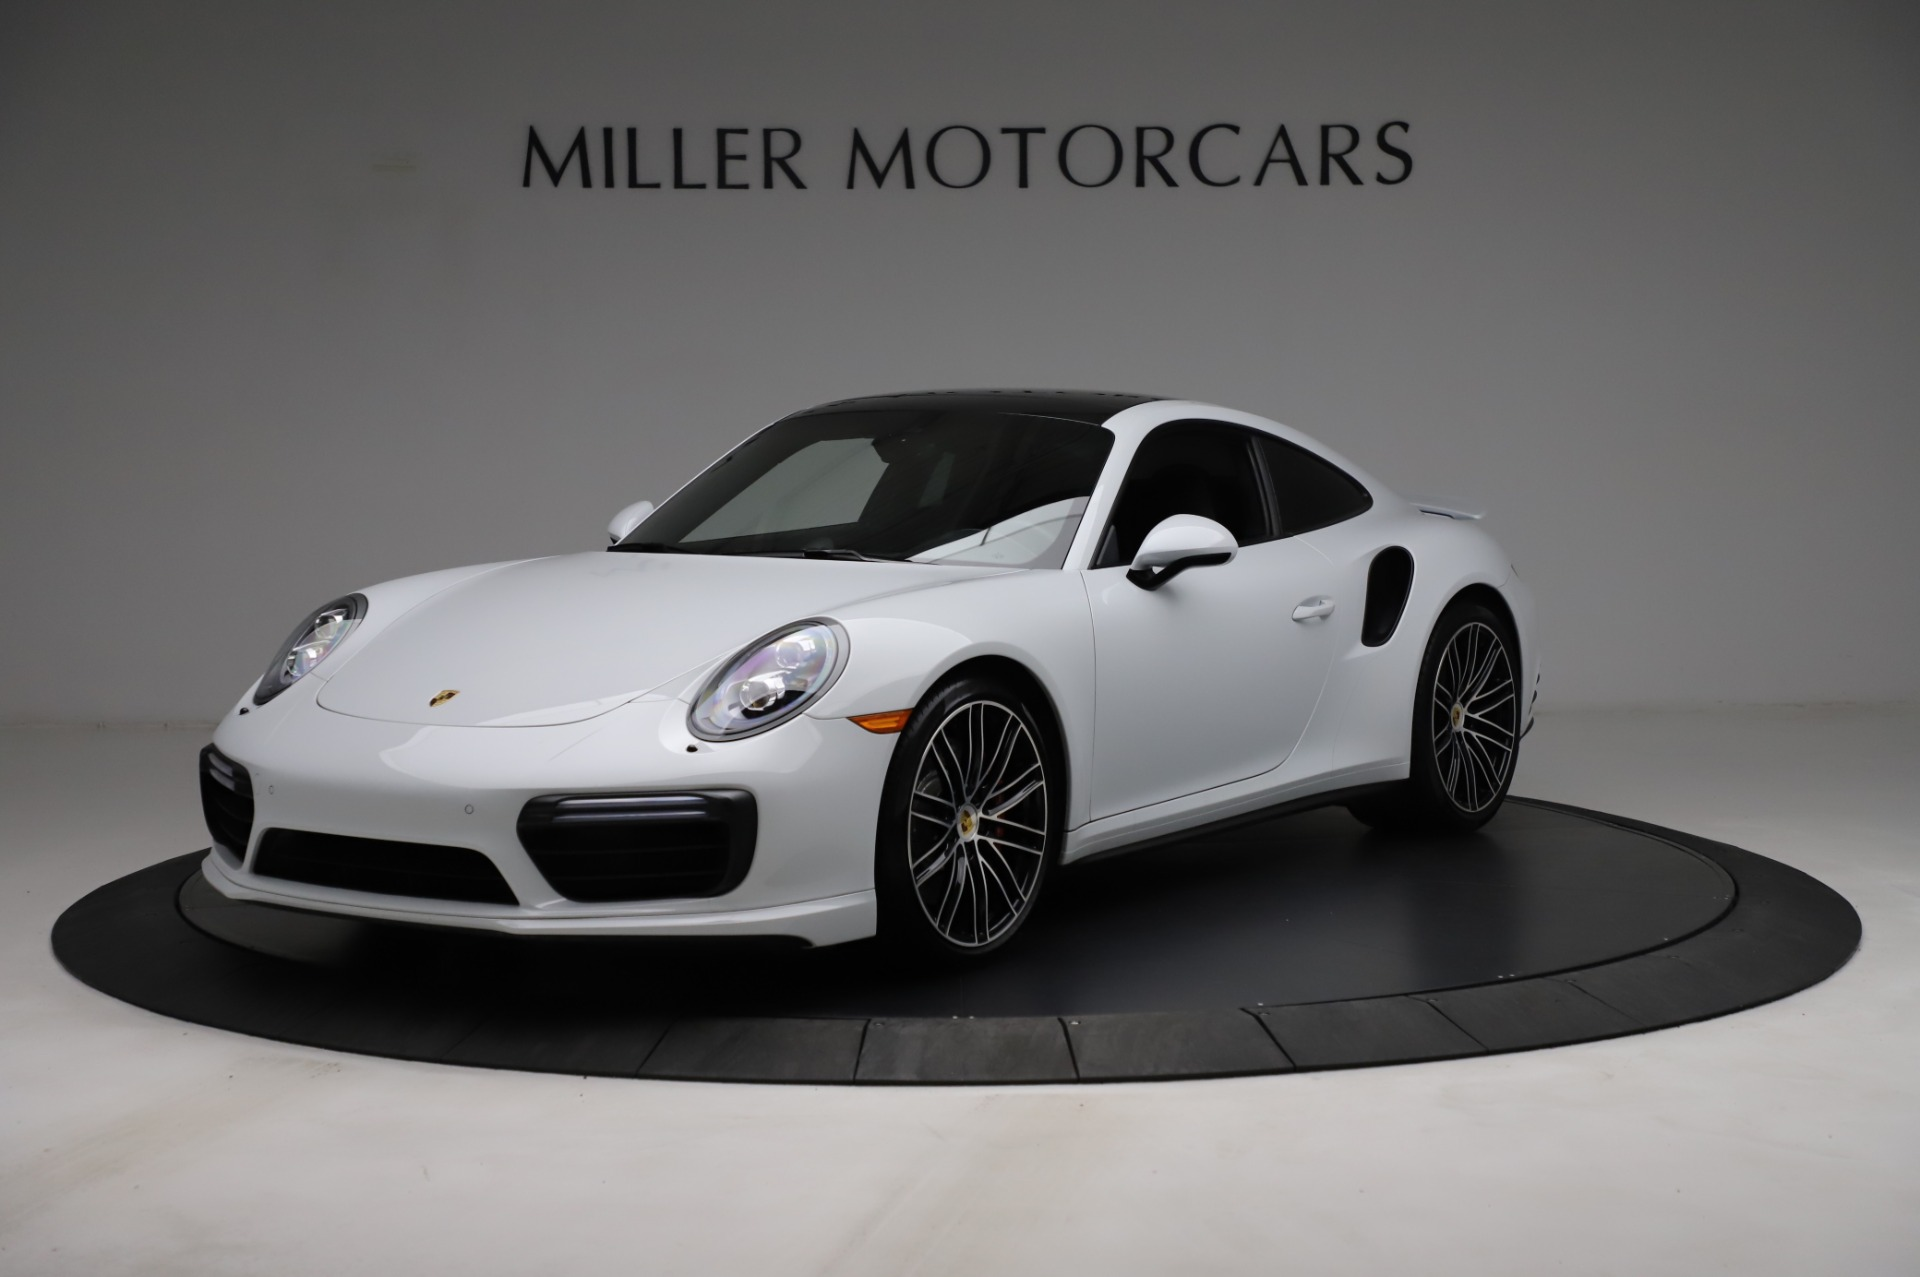 Used 2018 Porsche 911 Turbo for sale $159,990 at Rolls-Royce Motor Cars Greenwich in Greenwich CT 06830 1